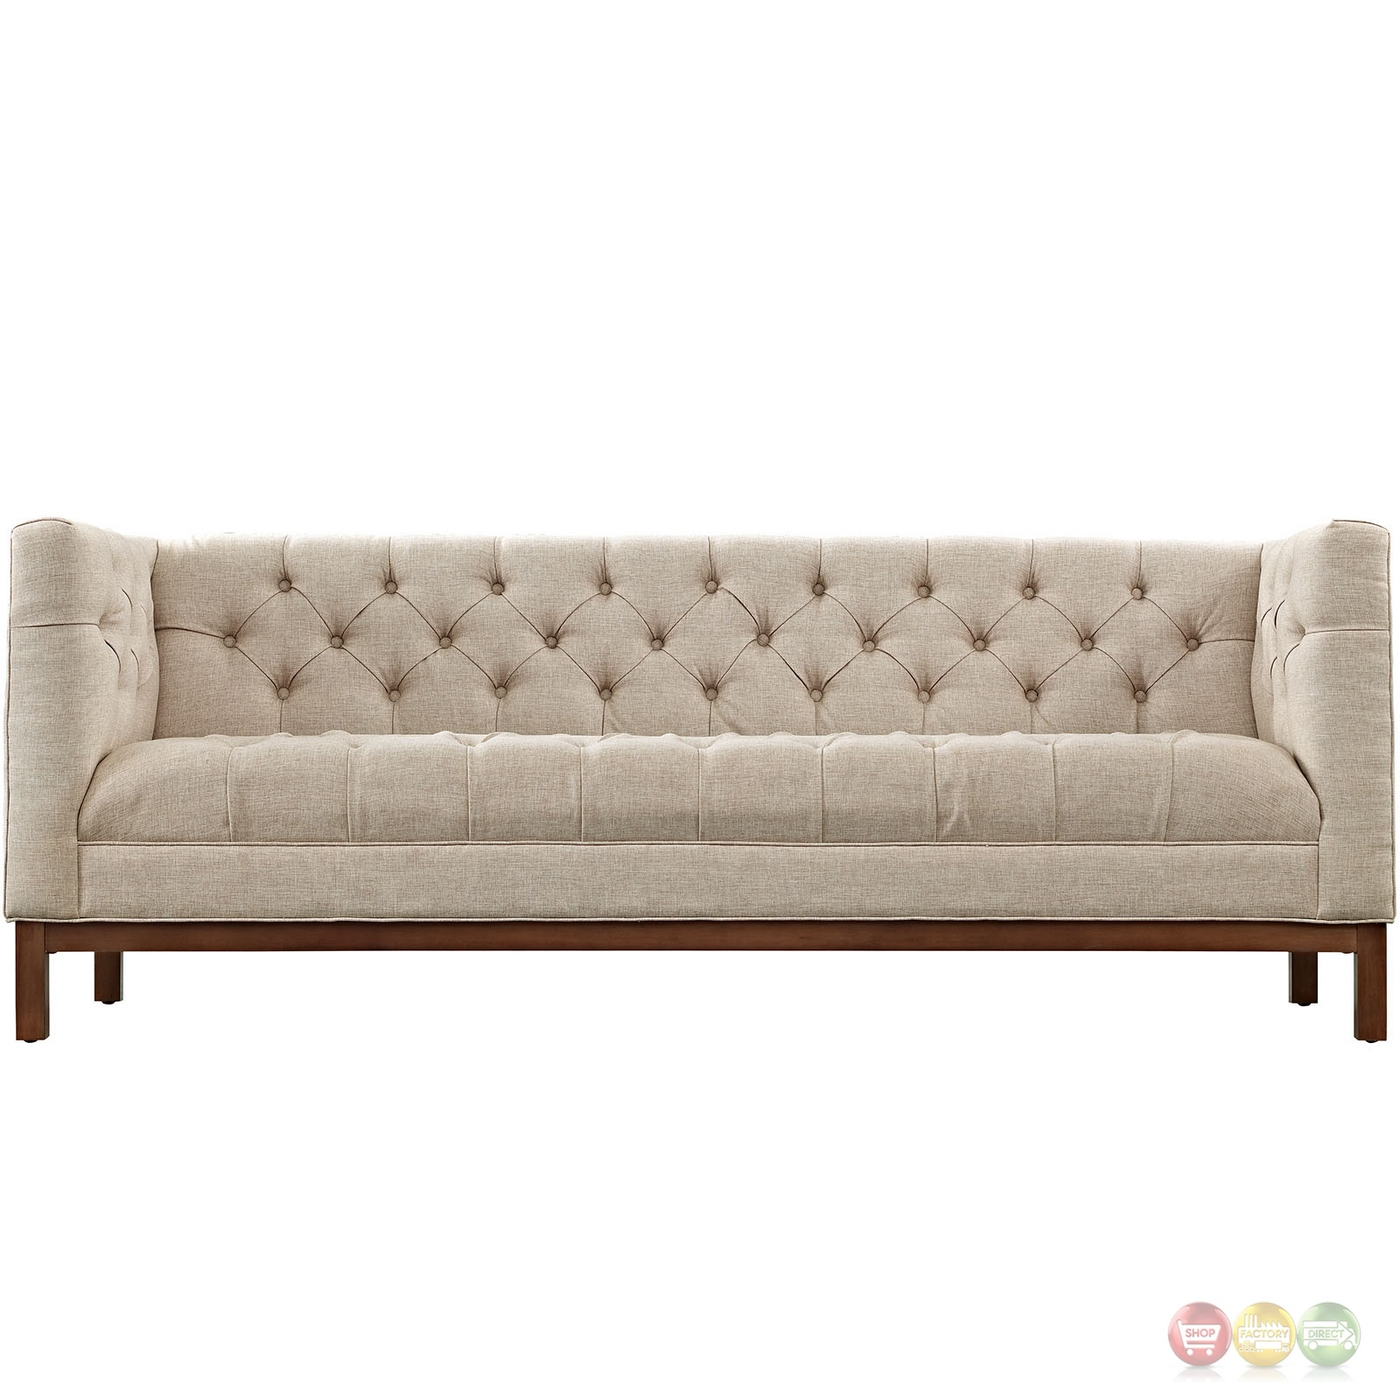 Panache Vintage Square Button Tufted Upholstered Sofa Beige